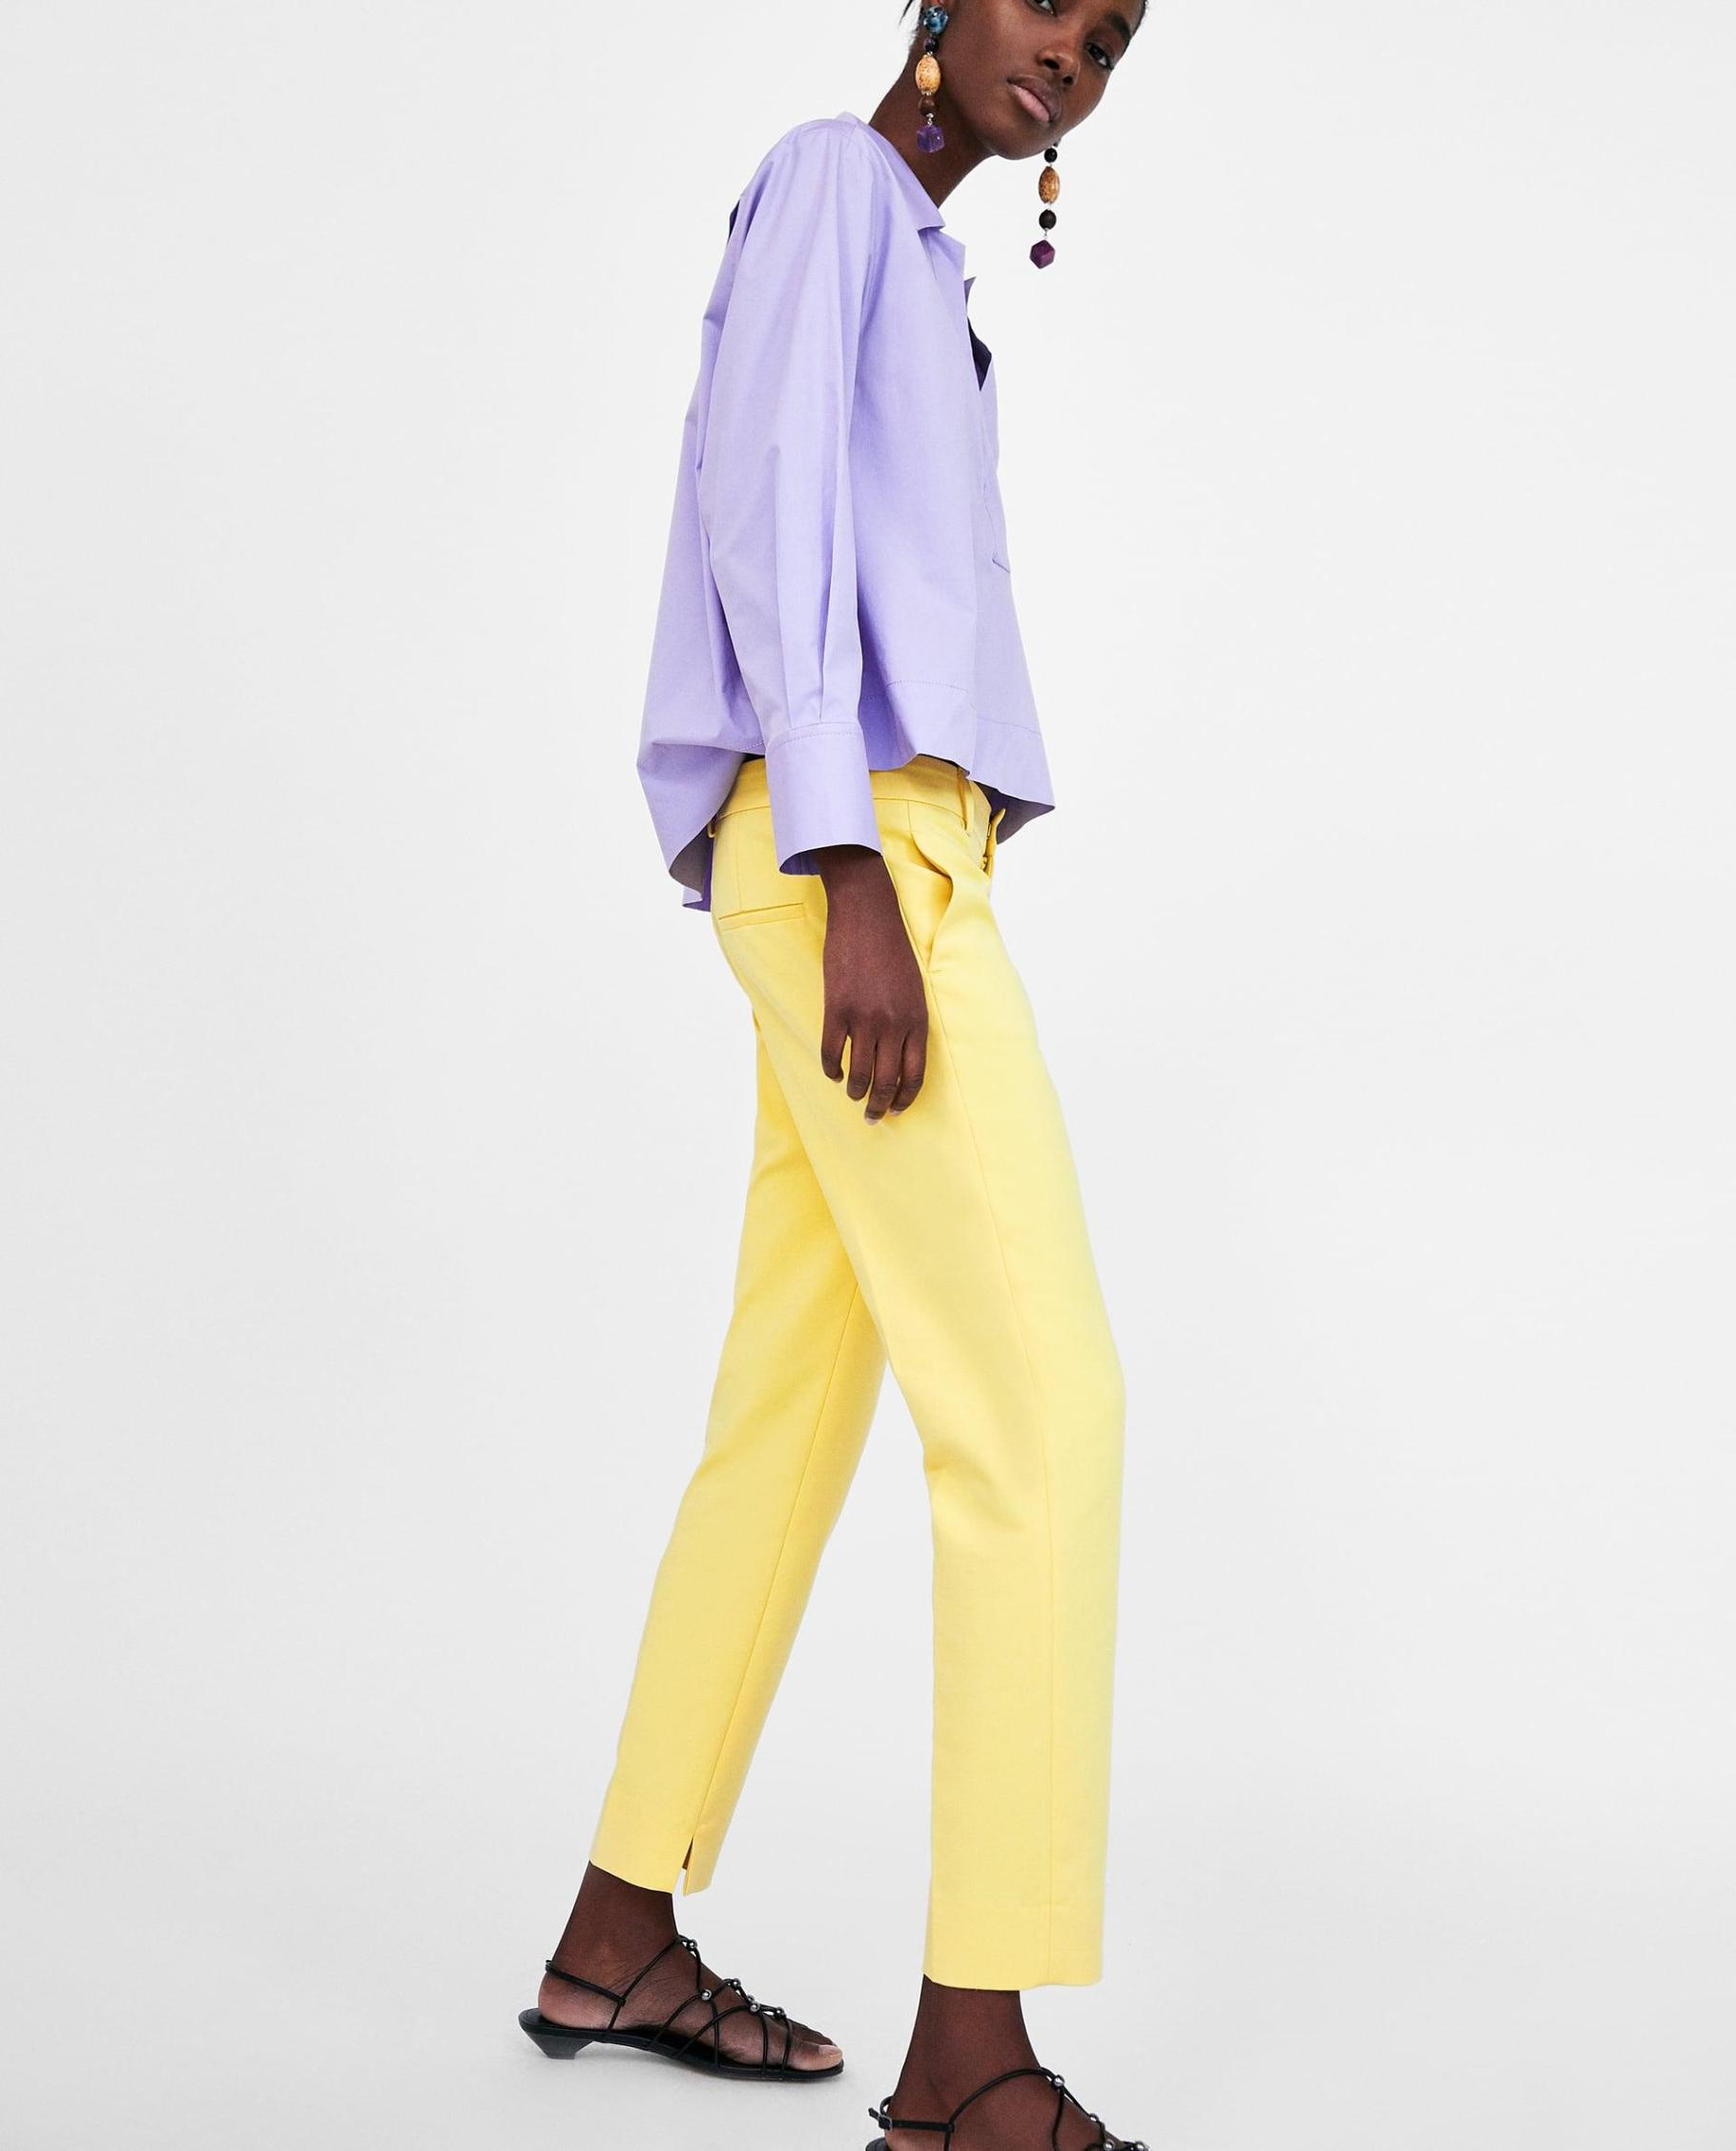 How to Wear Pastels 2019 Updated |Lemon Yellow Trousers and Lilac Shirt |www.kittyandb.com #Lilac #Pastel #Chic #Lemon #Yellow #colourInspiration #NetBag #OutfitInspiration #ColourPairing